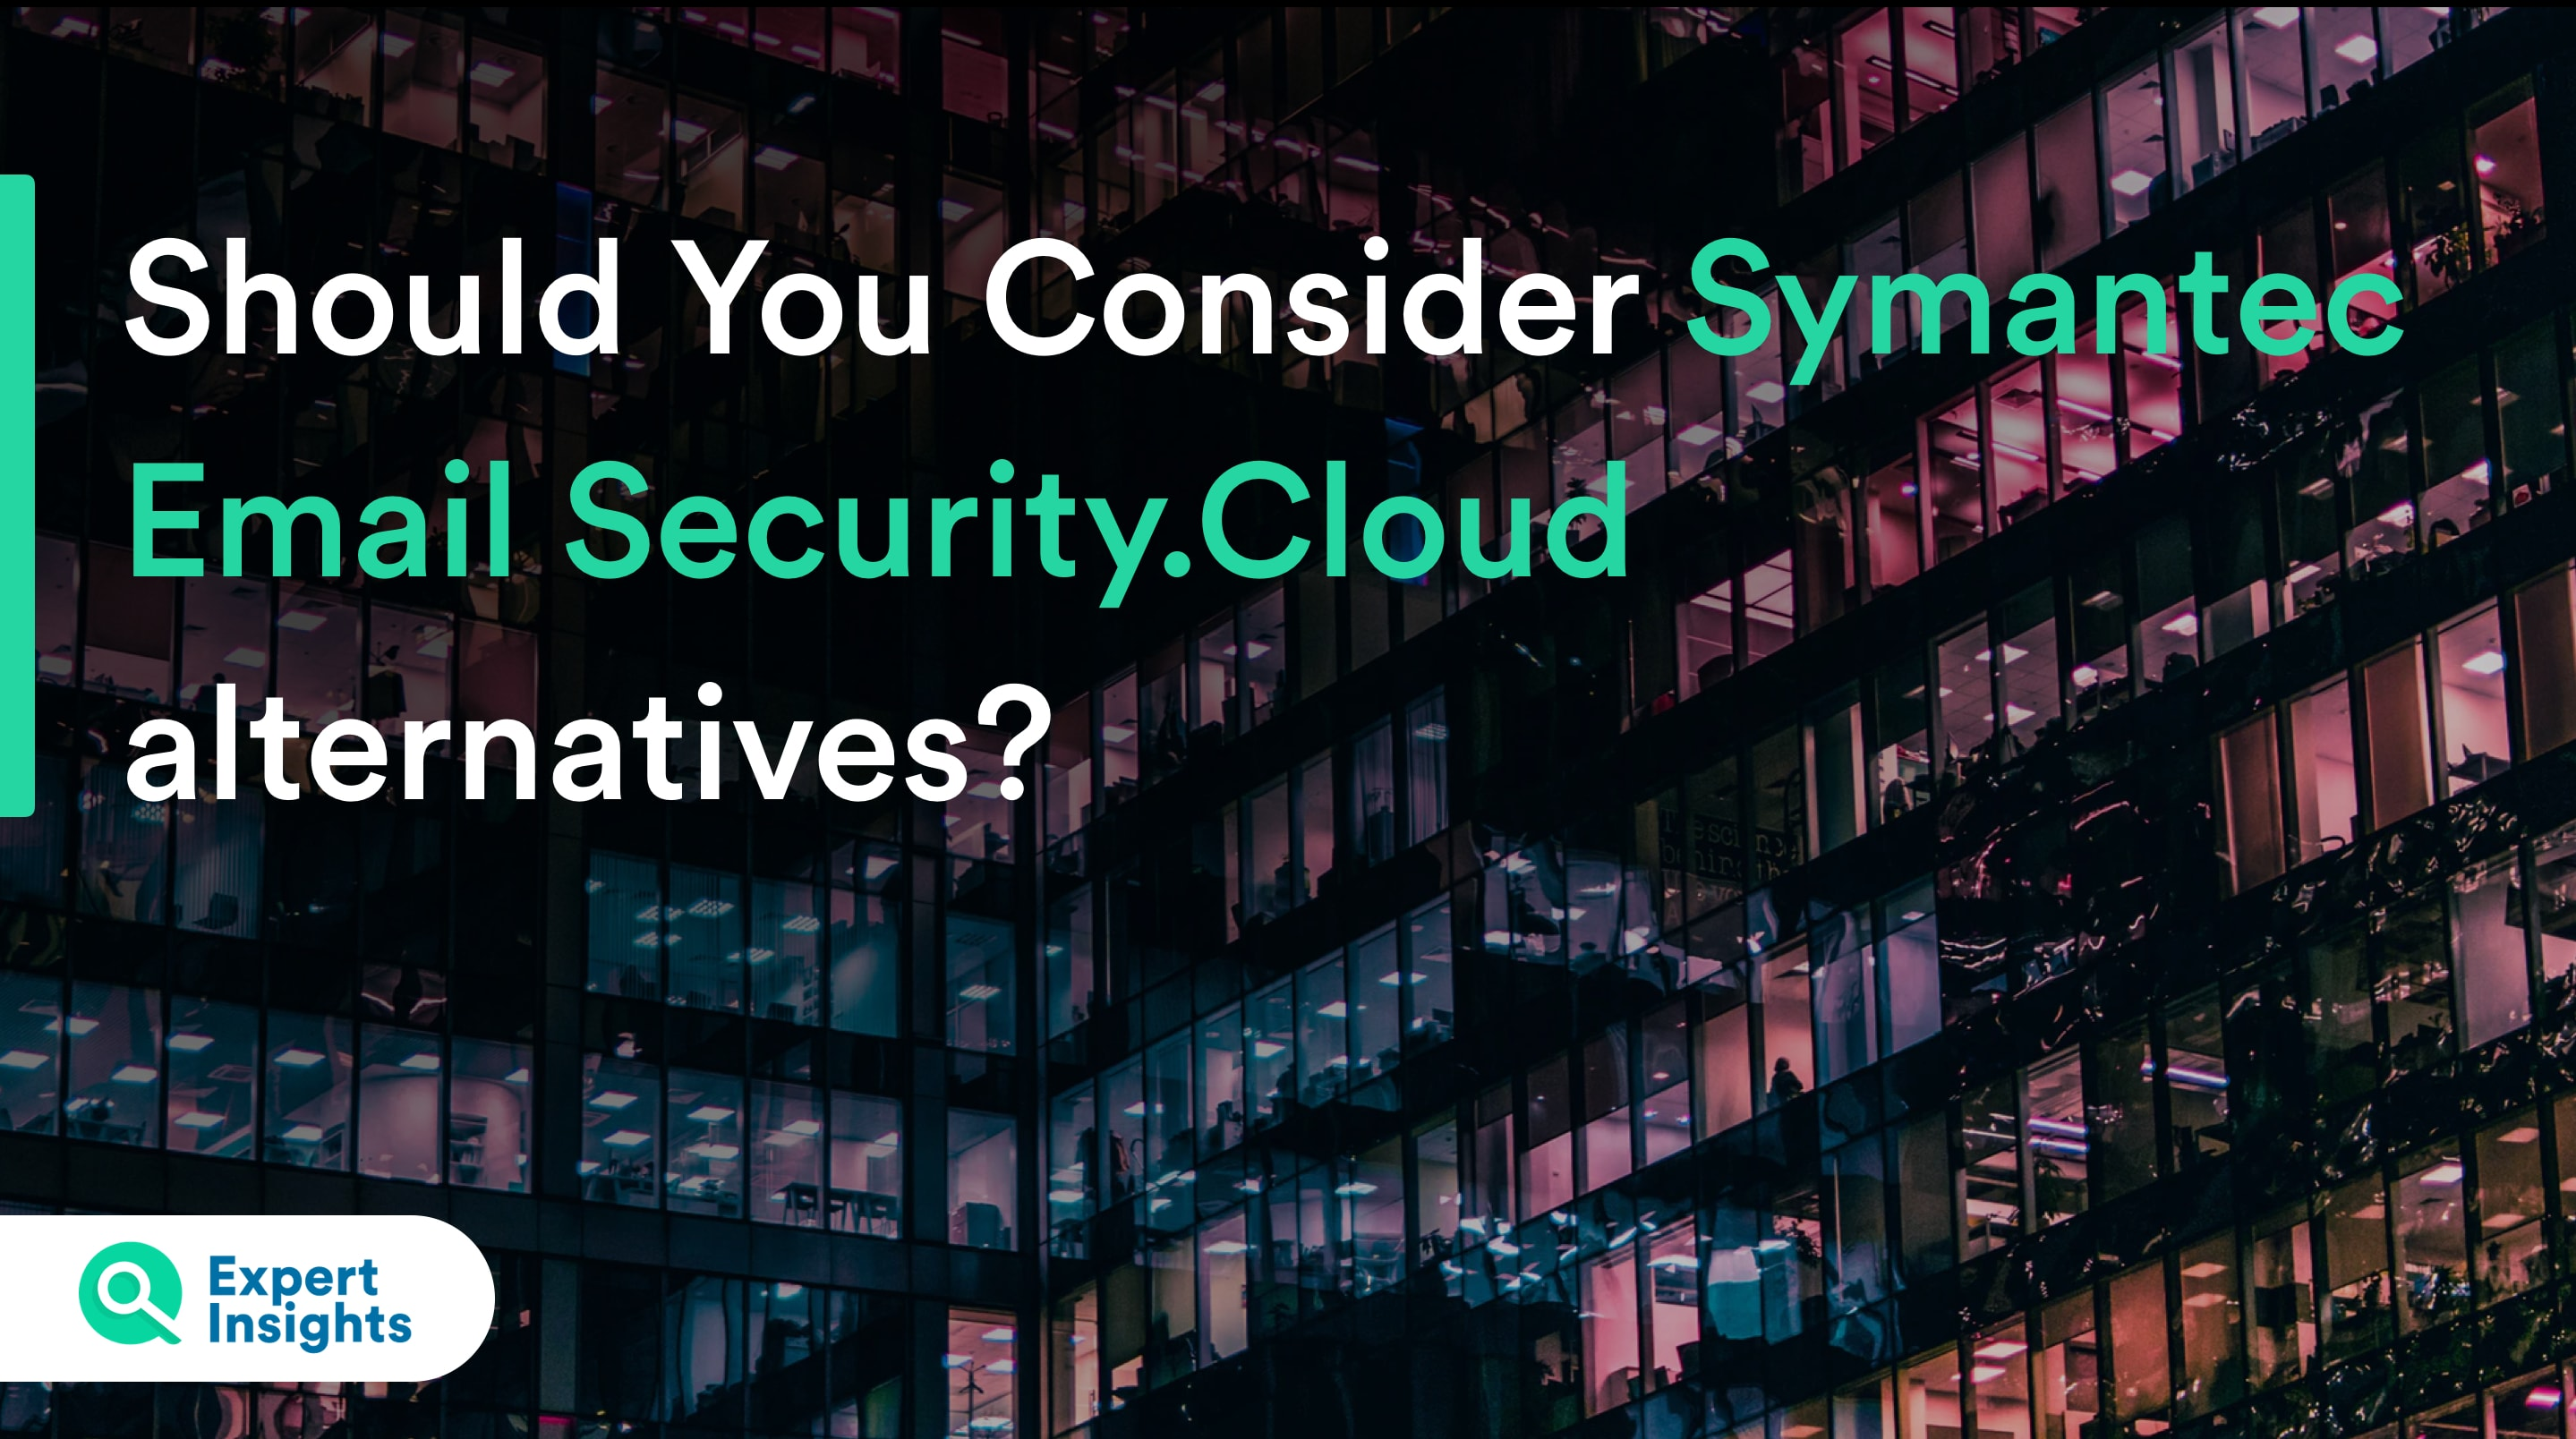 symantec alternatives